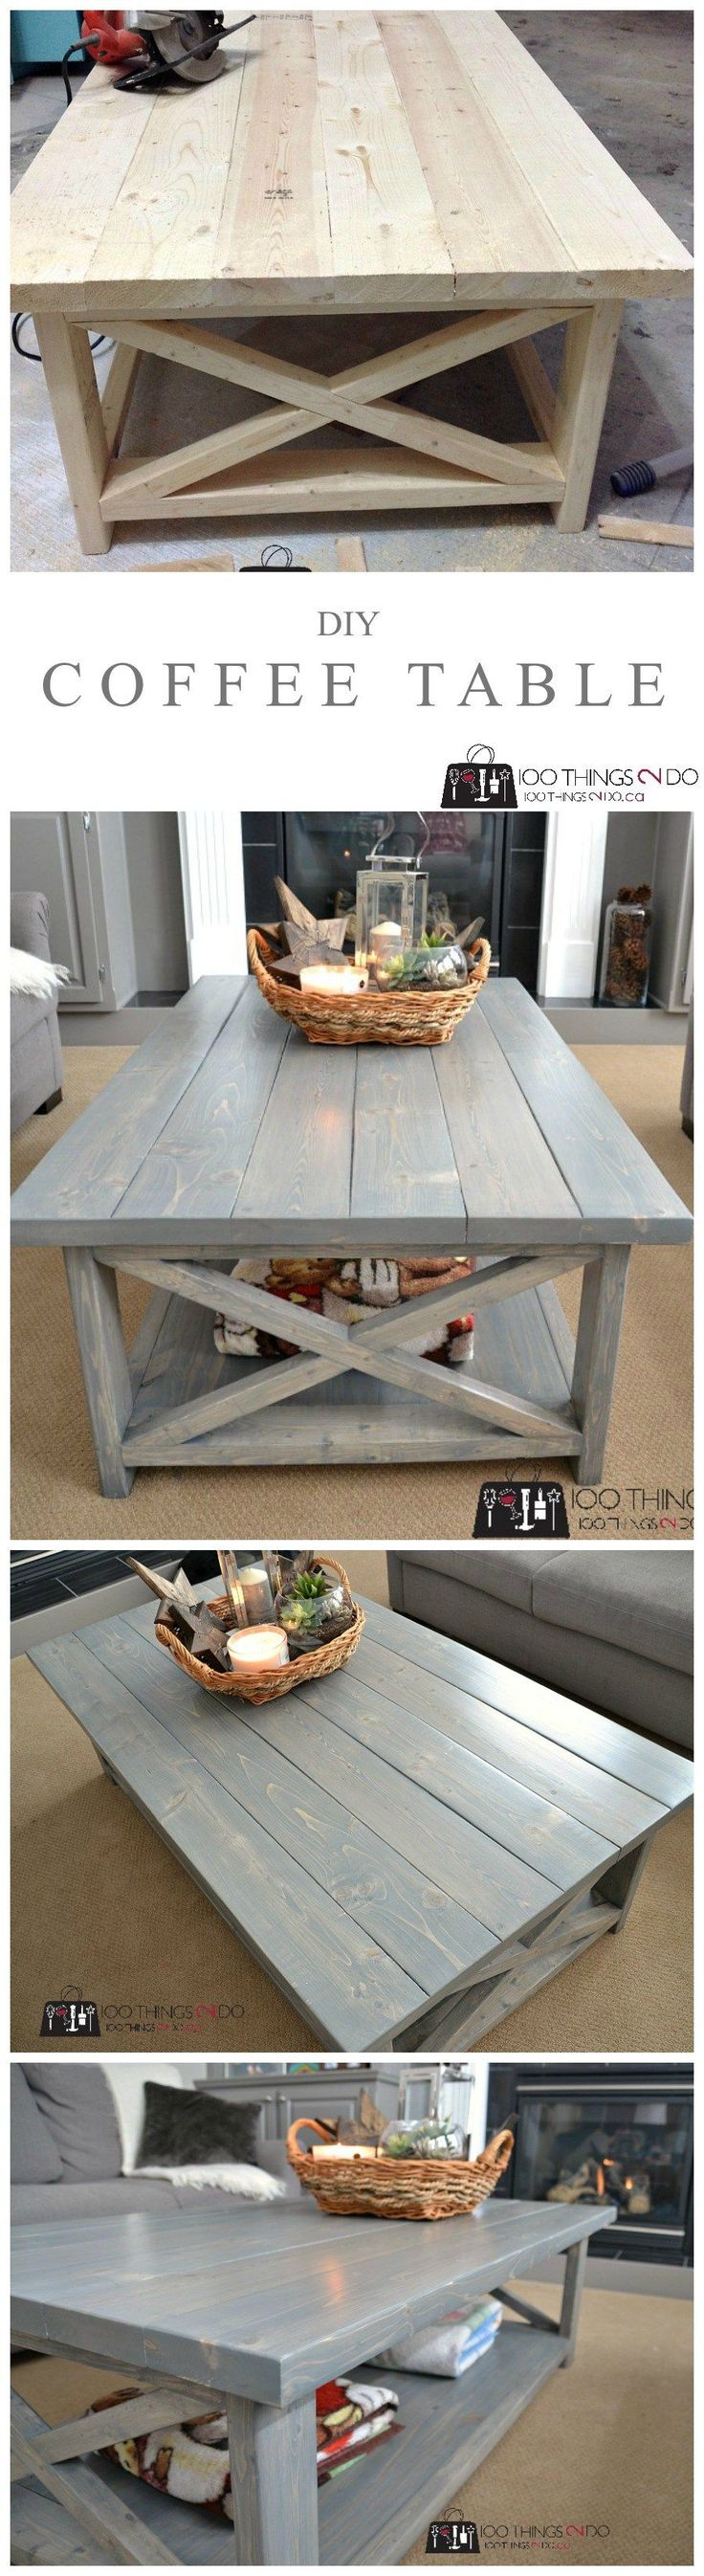 diy wood furniture projects. diy coffee table rustic x diy wood furniture projects